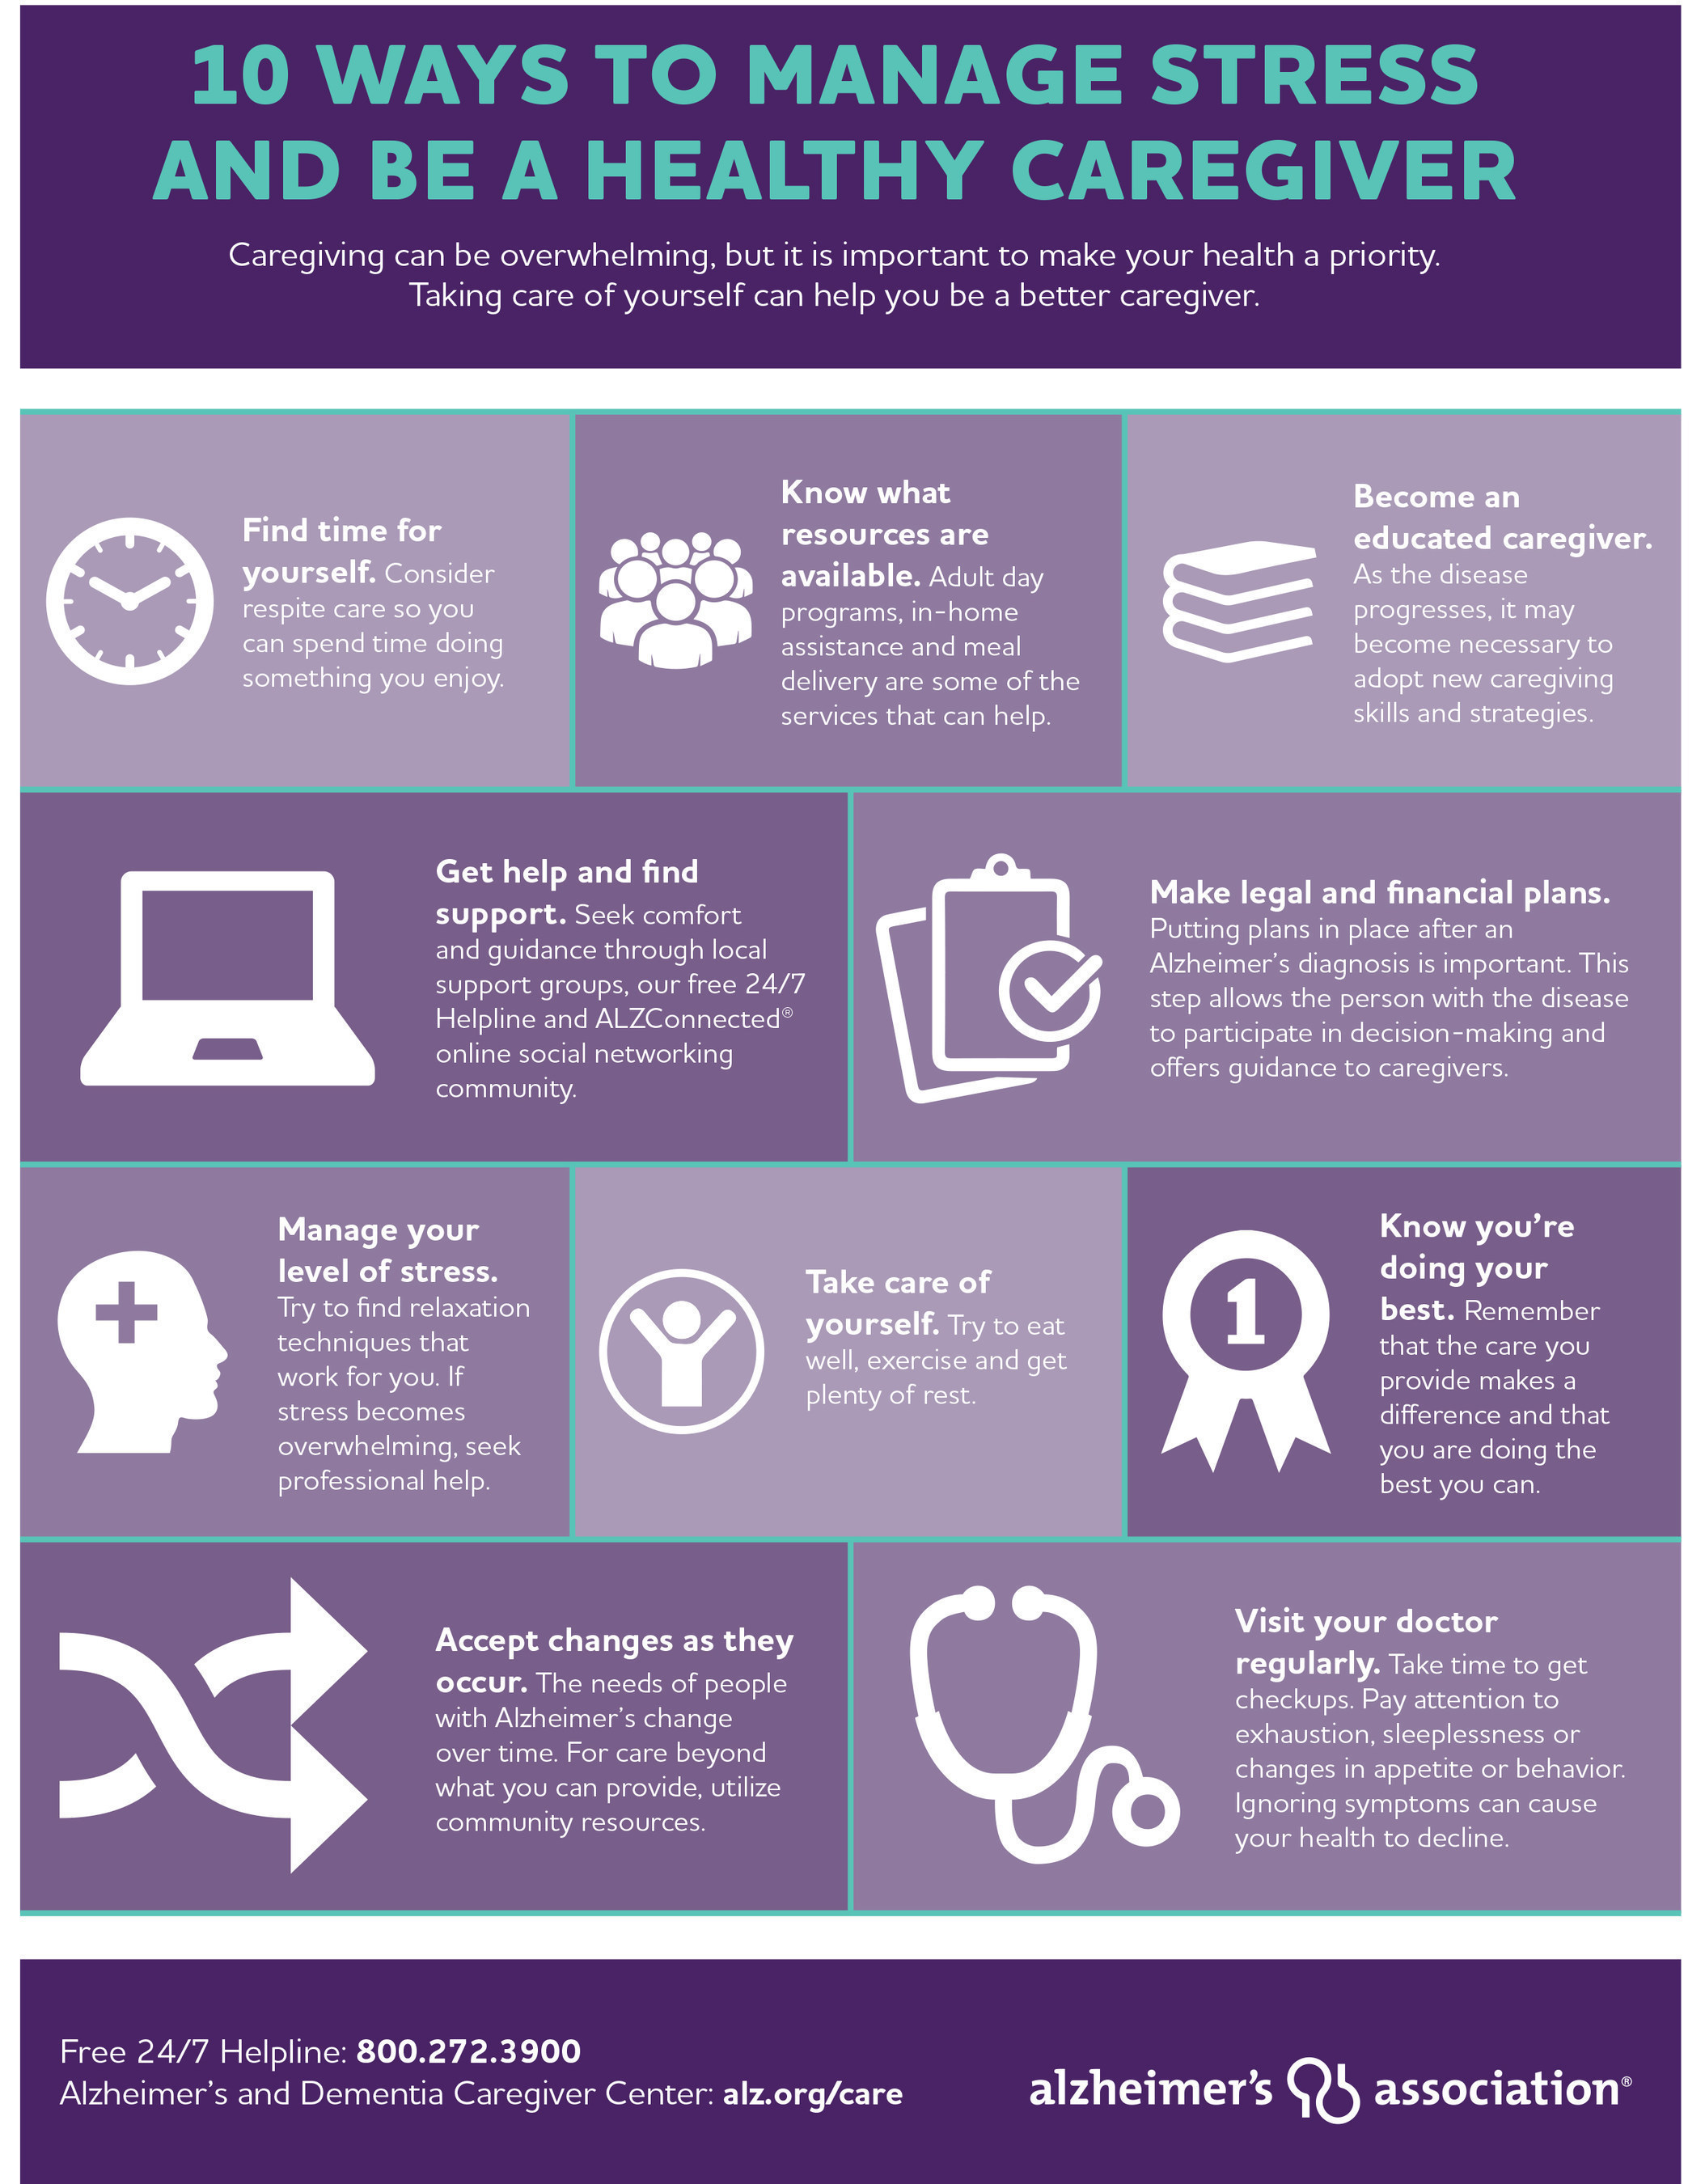 10 Ways To Manage Stress And Be A Healthy Alzheimer's Caregiver